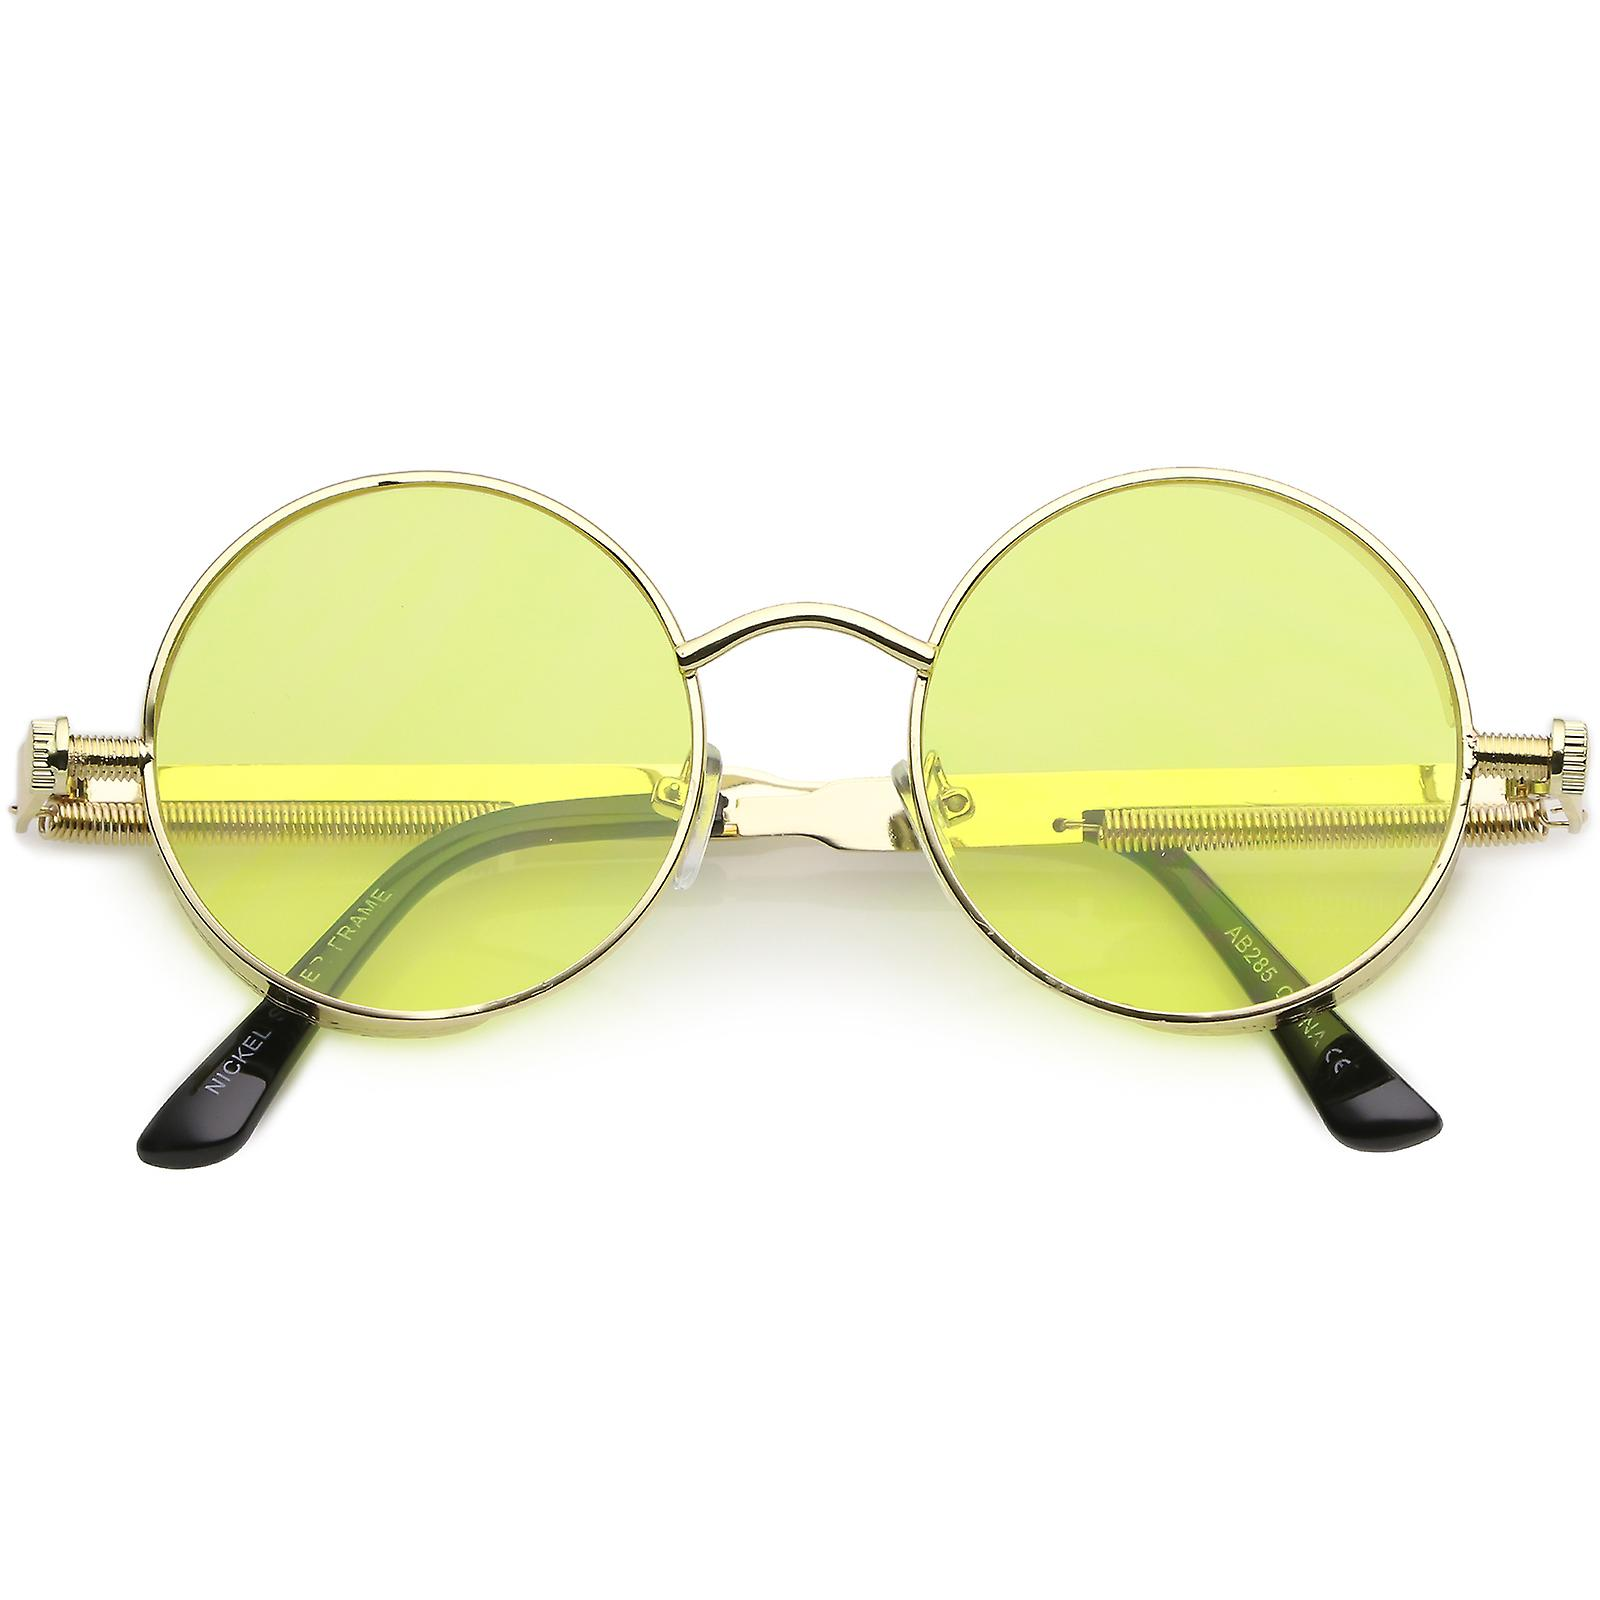 Steampunk Metal Round Sunglasses With Metal Side Cover Flat Lens 42mm